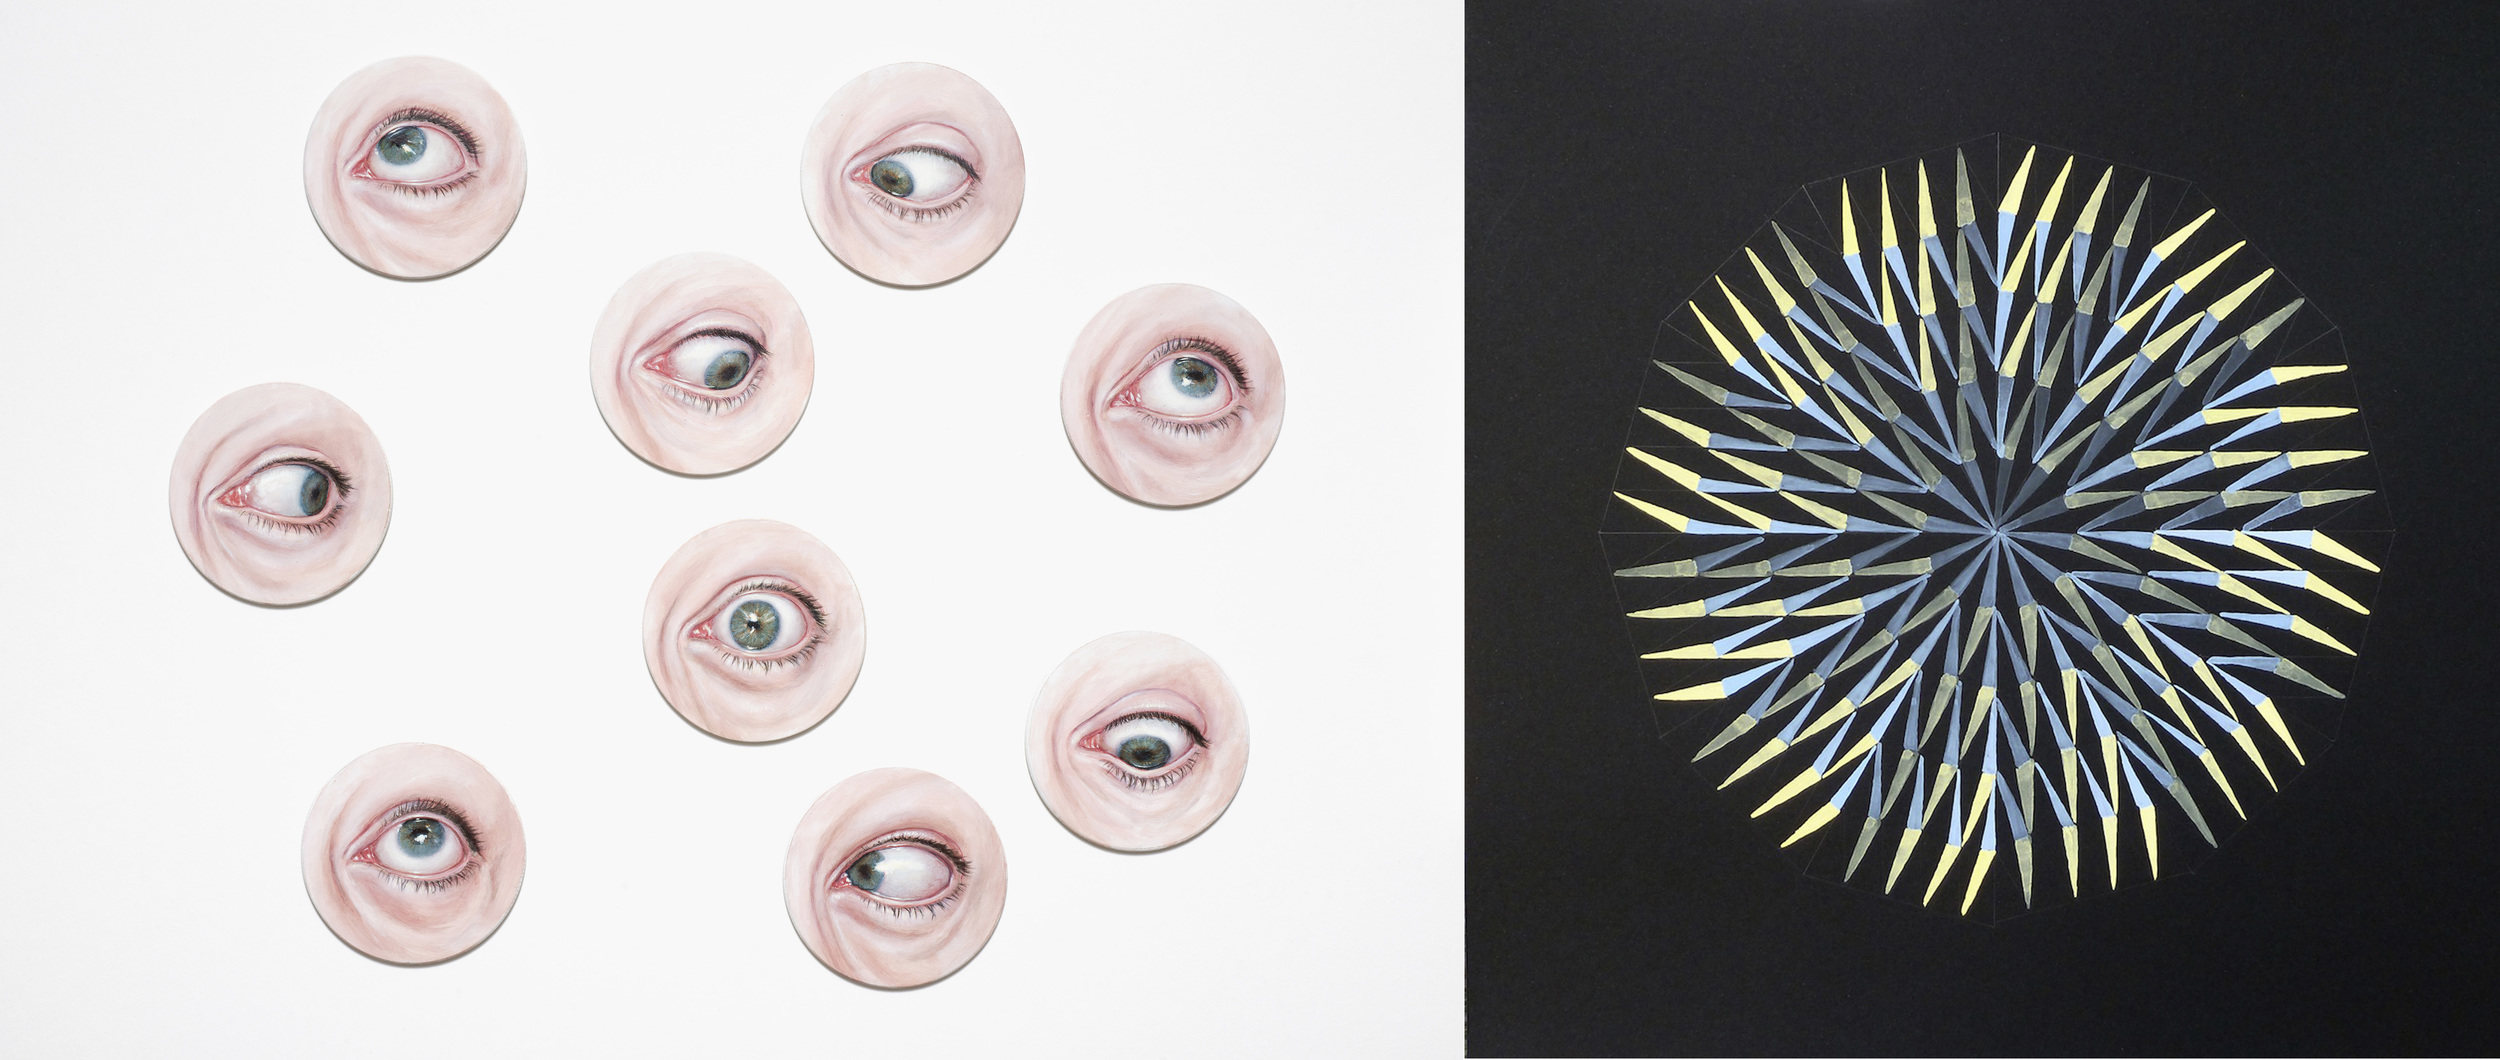 Left: A private view (2009) andright: Let us calculate (detail, 2014)